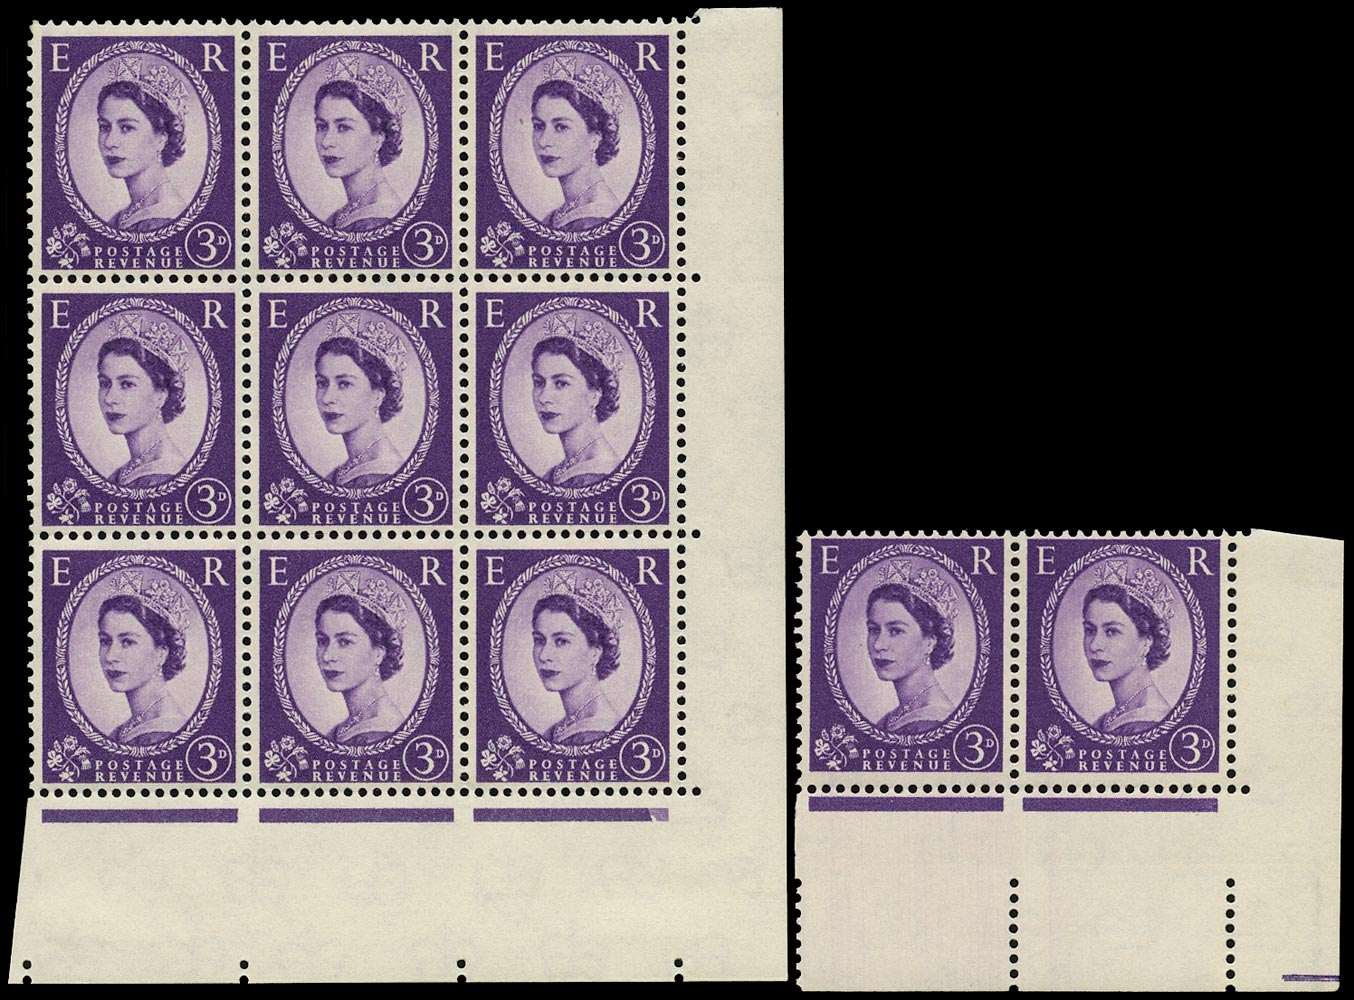 GB 1958  SG575e/ea Mint - Phantom 'R' and retouch varieties